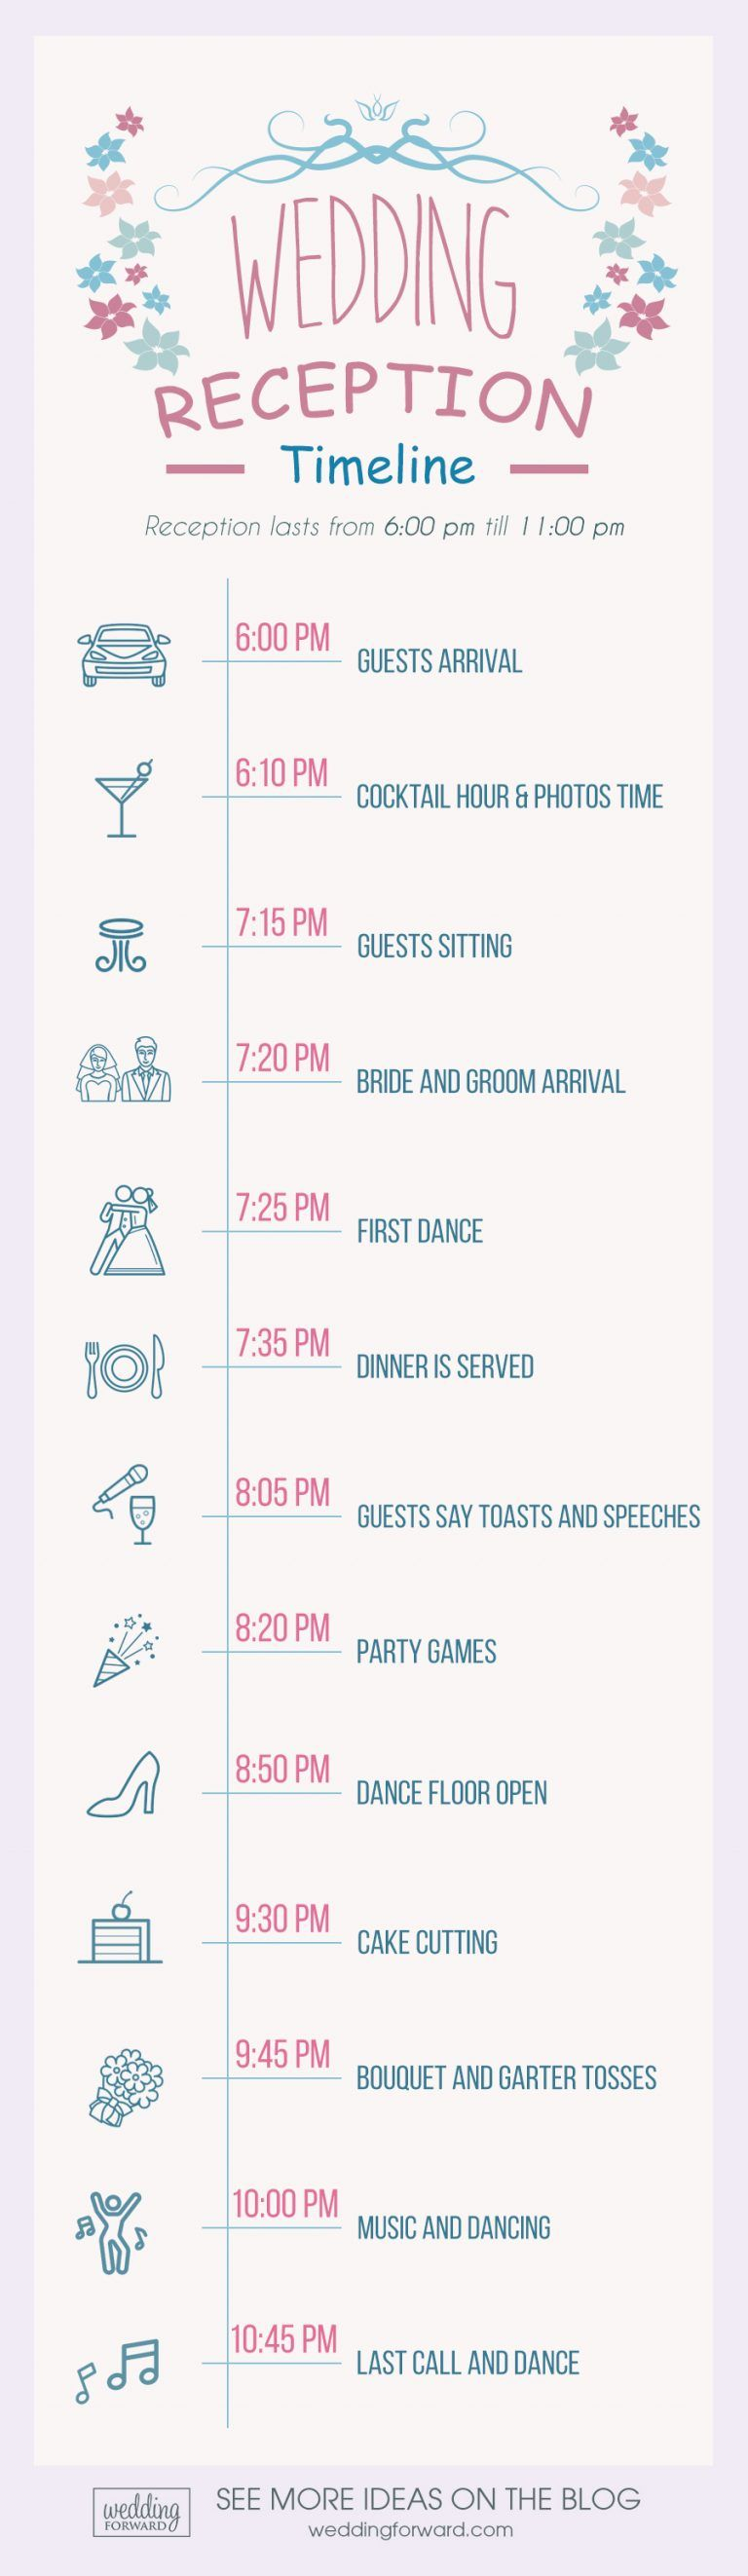 9 Expert Tips To Creating Traditional Wedding Reception Timeline